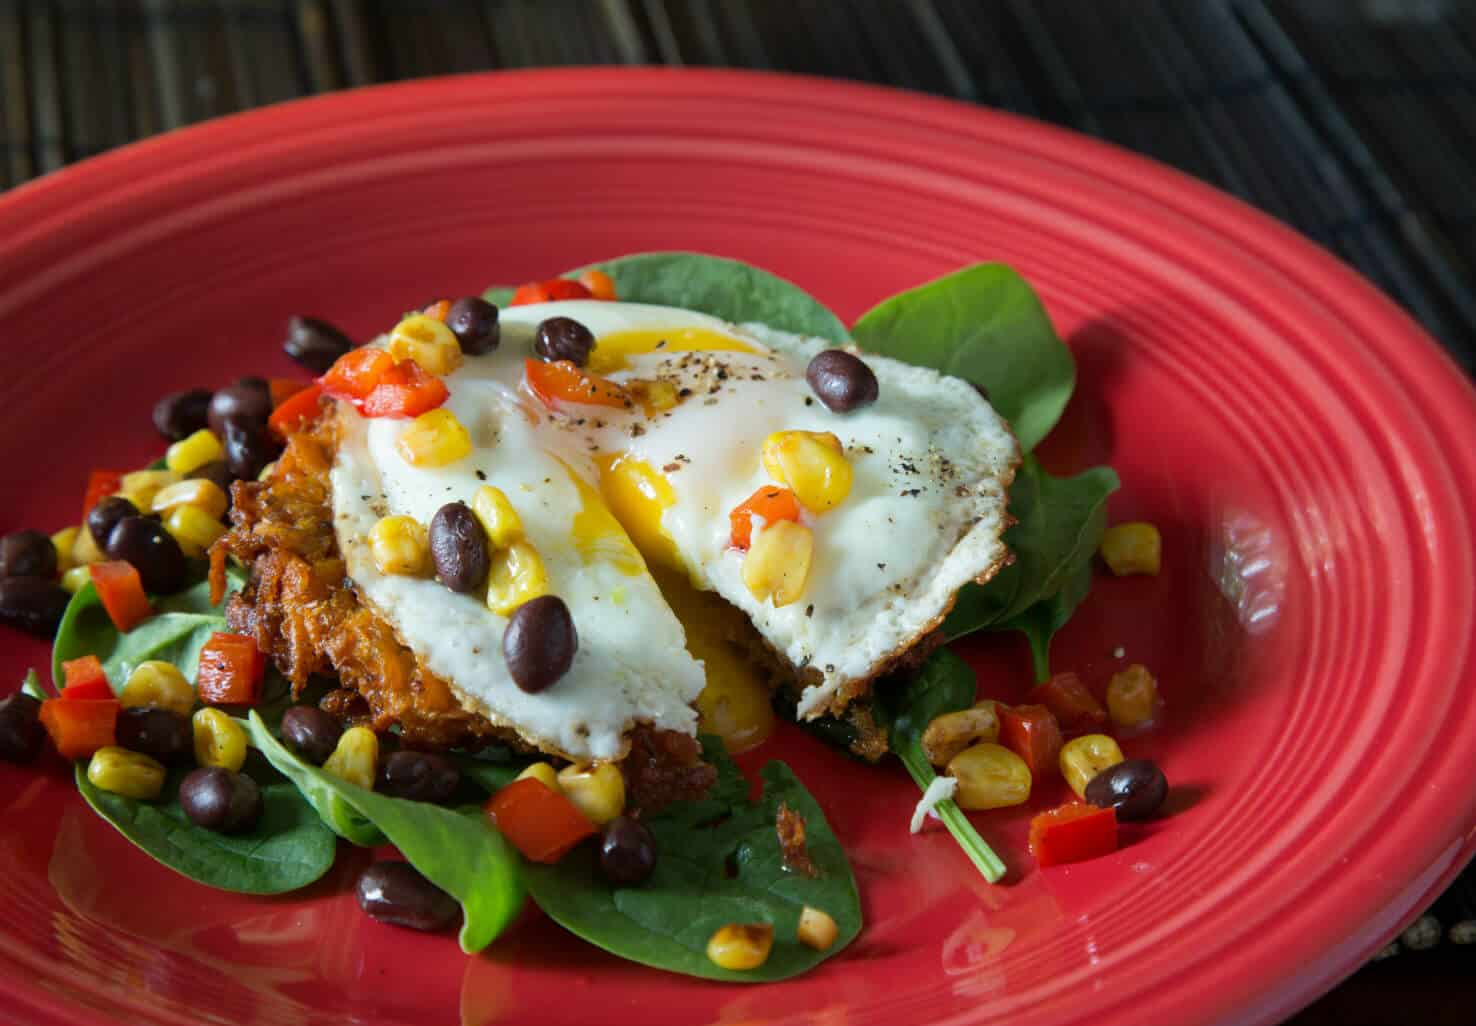 Savory breakfast with fried egg over hash browns and baby spinach